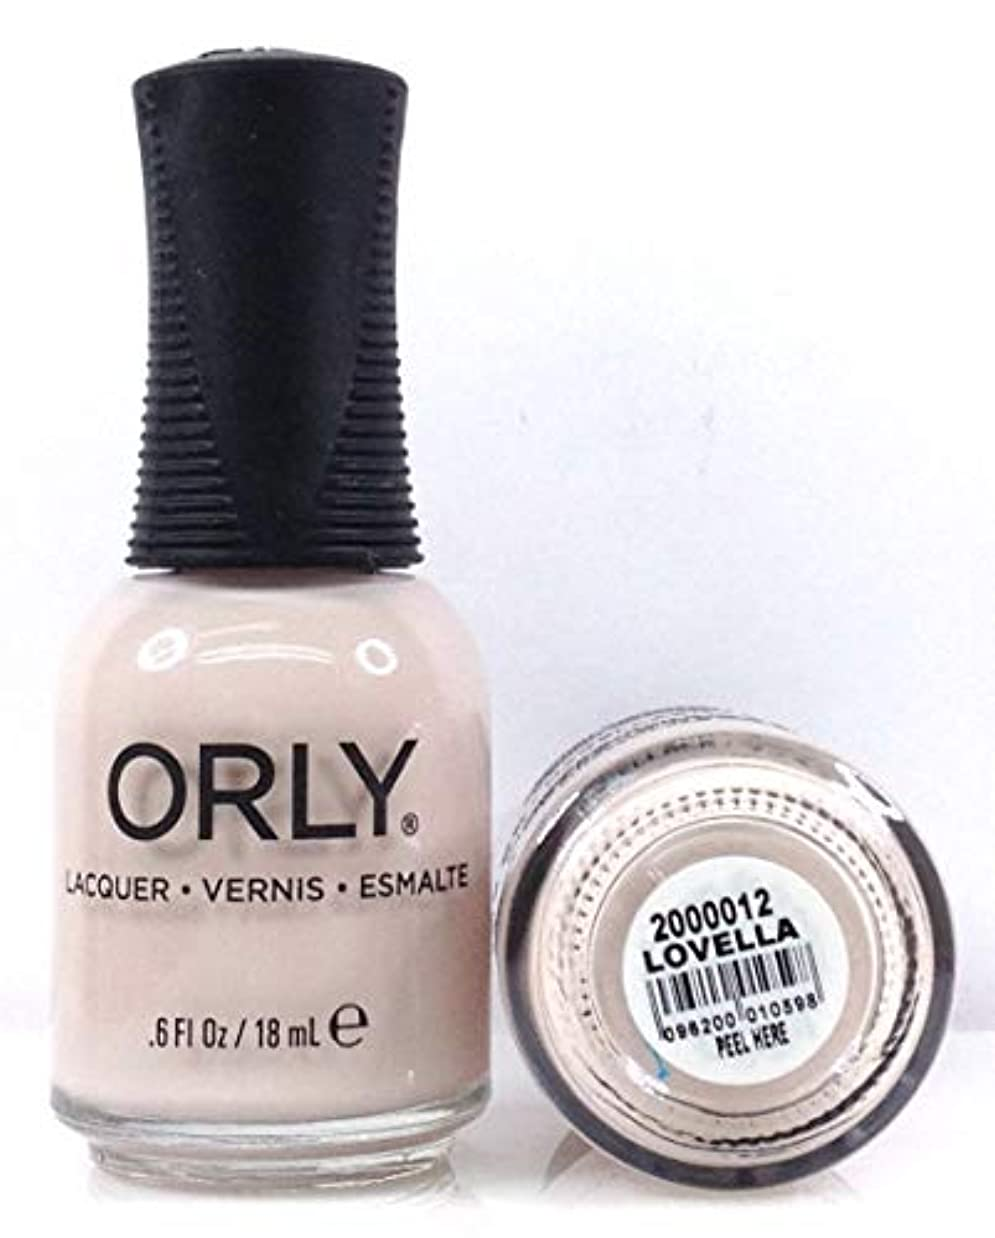 Orly Nail Lacquer - Radical Optimism 2019 Collection - Lovella - 0.6 oz / 18 mL